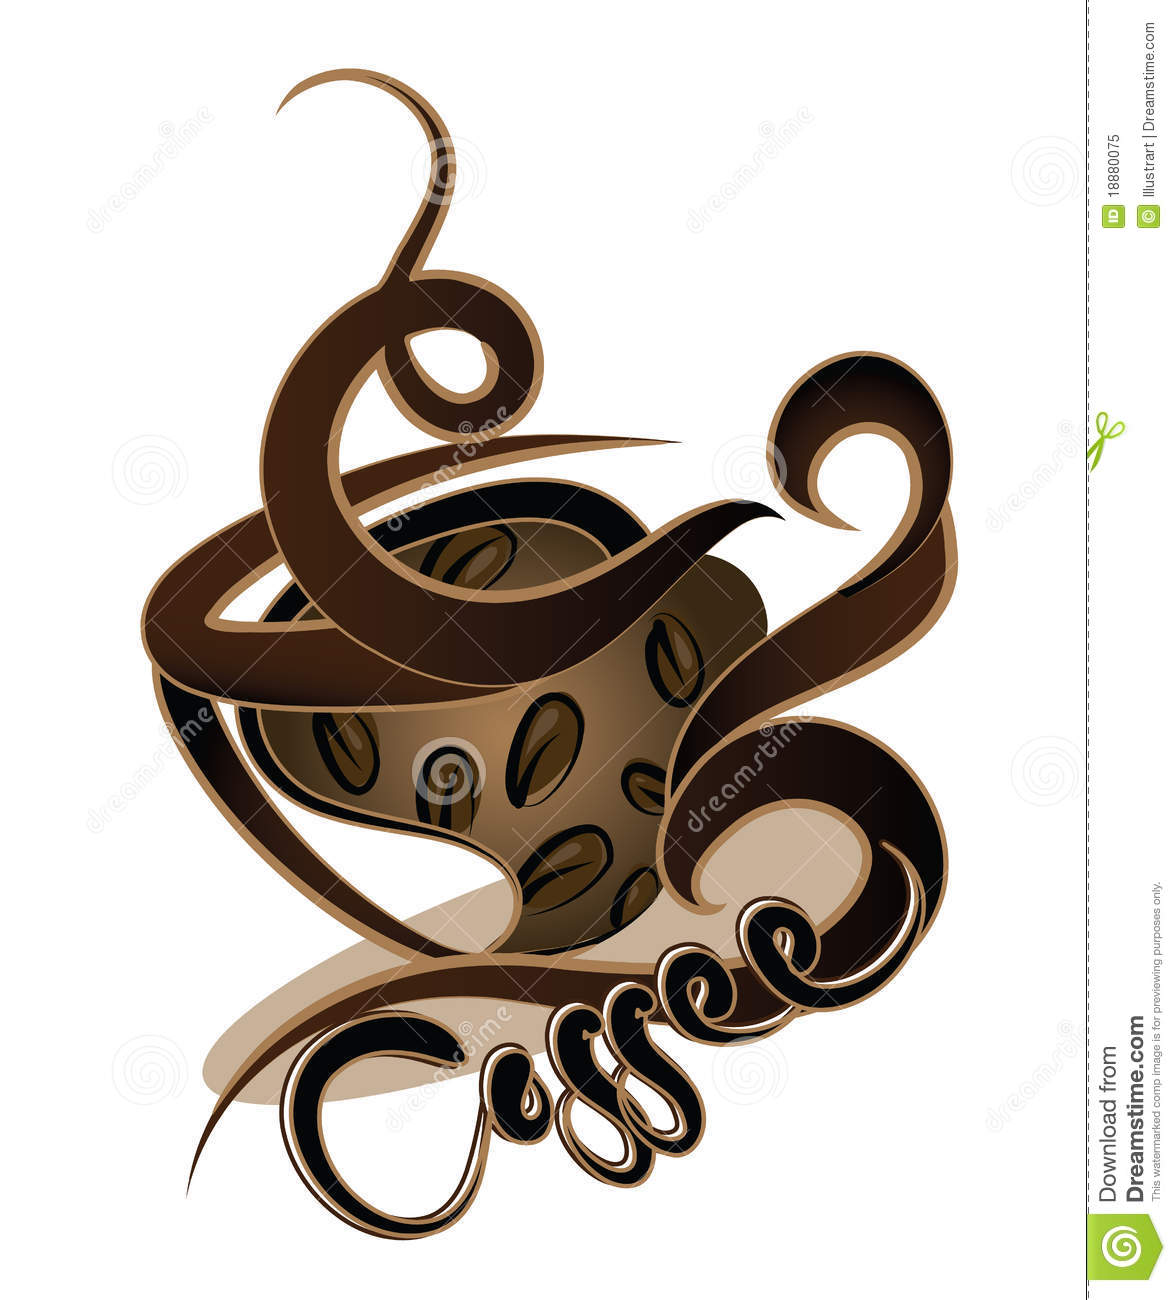 Coffee Design Royalty Free Stock Photo Image 18880075